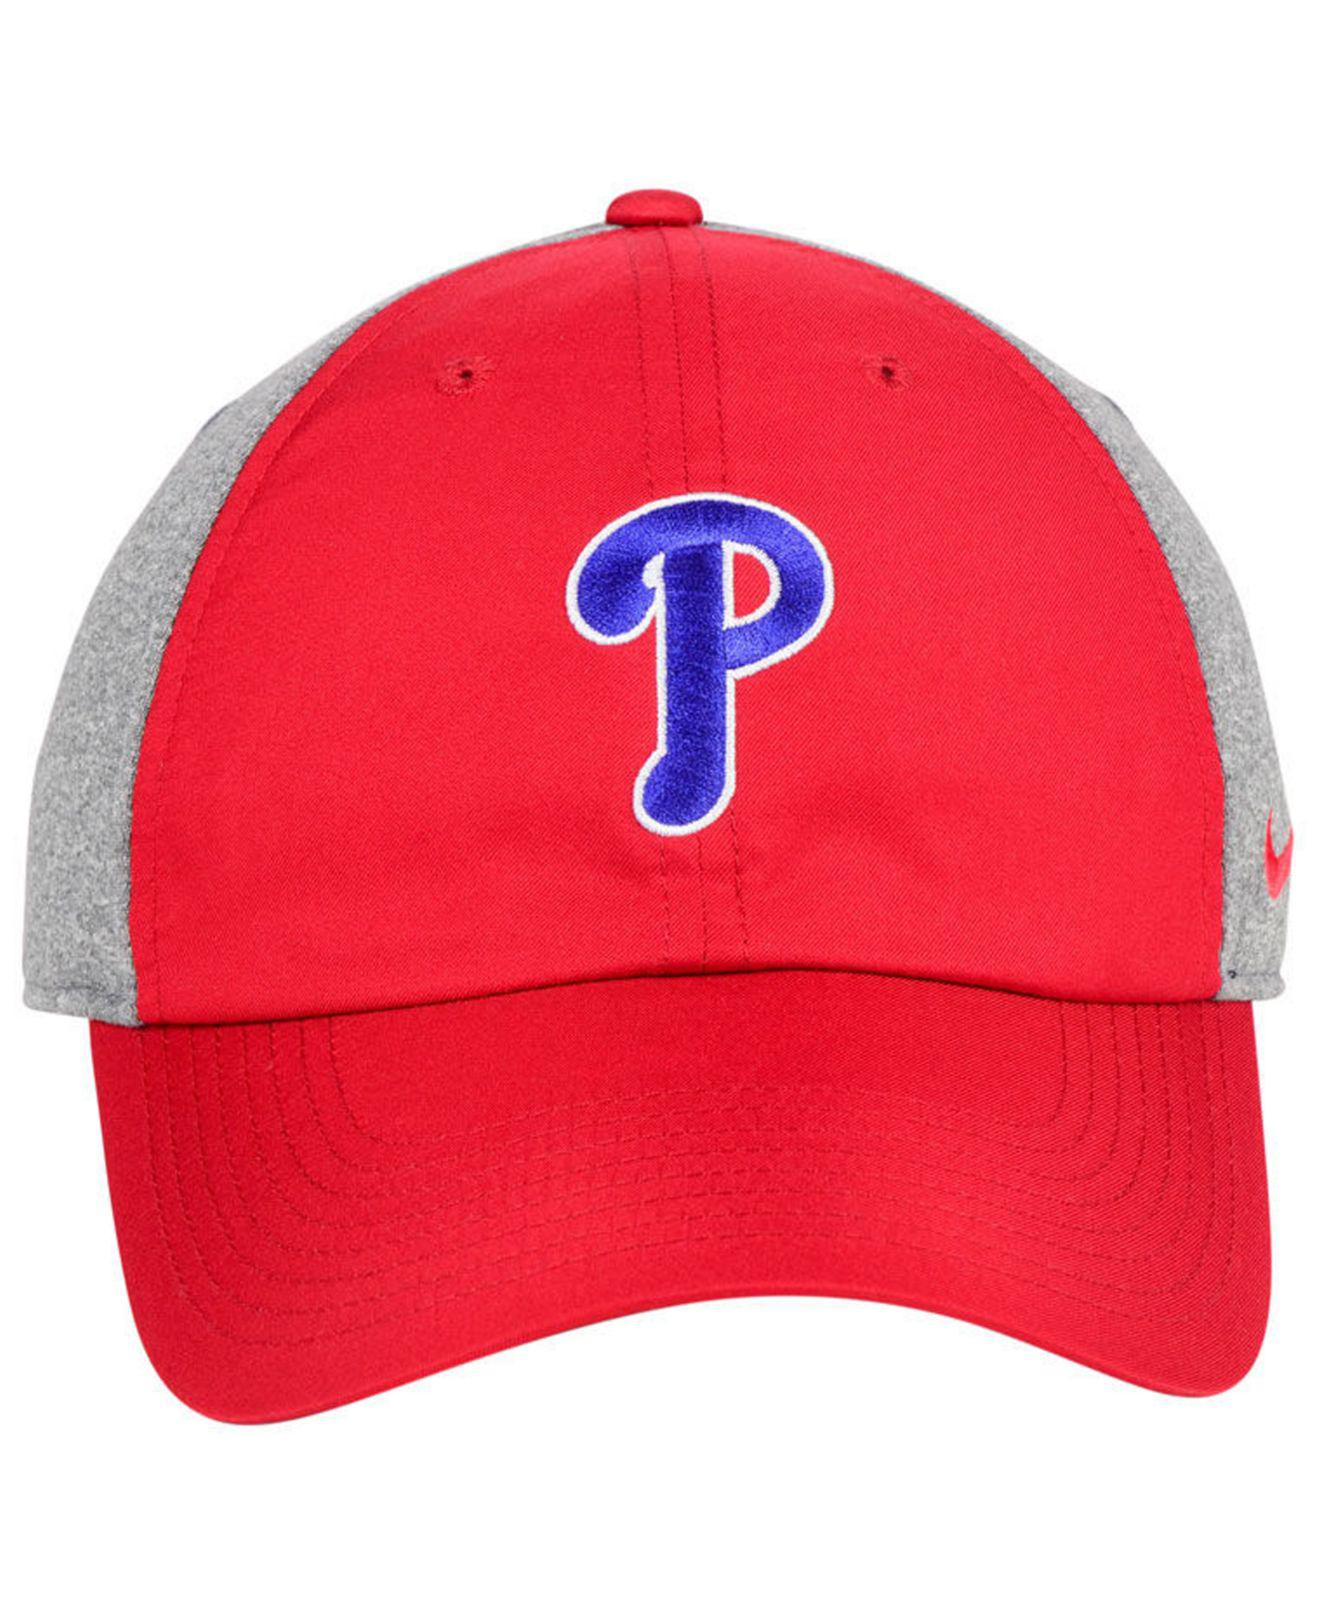 reputable site 424ab b4266 ... wholesale lyst nike philadelphia phillies new day legend cap in red for  men dfb33 6a9af